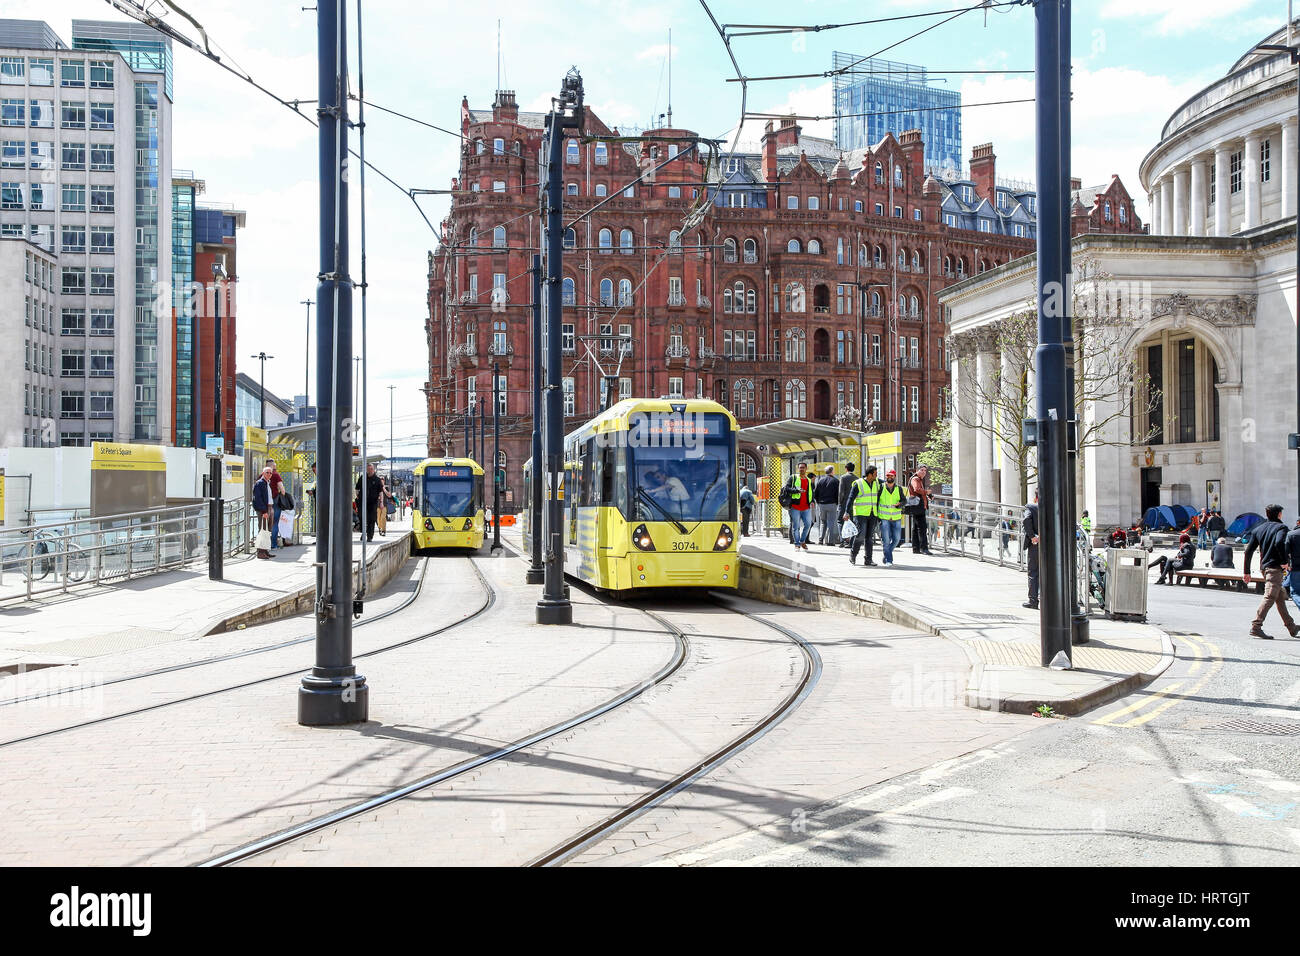 Trams at St. Peter's Square Station Manchester city centre Manchester England UK - Stock Image